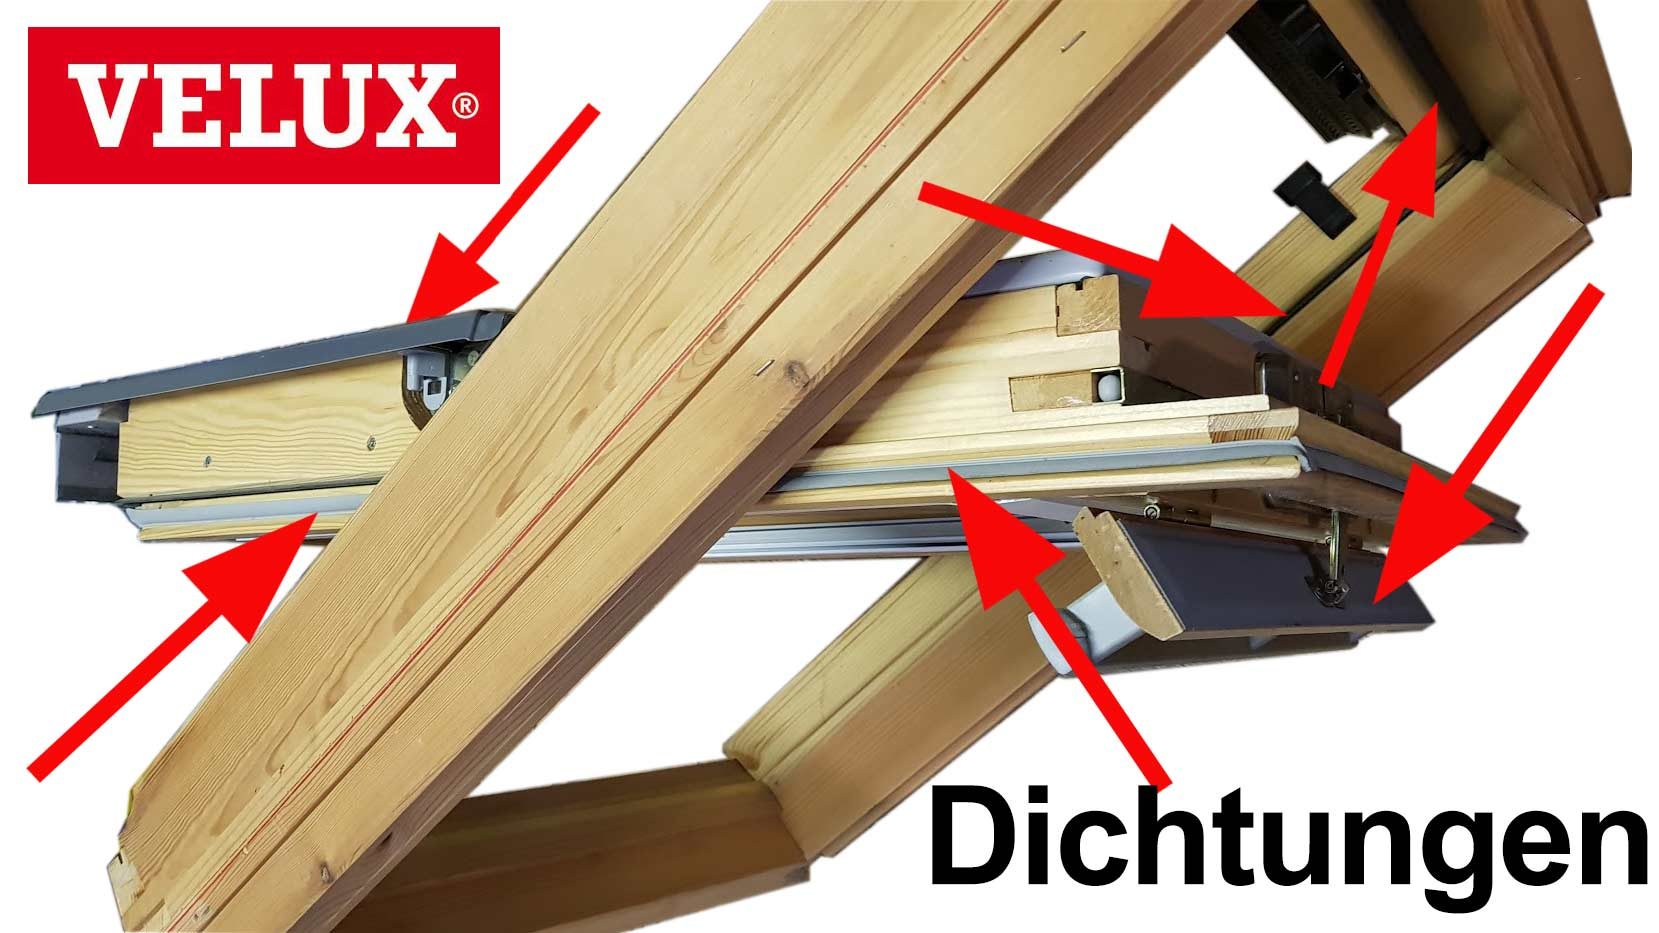 velux fenster kaufen affordable dachfenster richtig bestellen bm oder rm with velux fenster. Black Bedroom Furniture Sets. Home Design Ideas